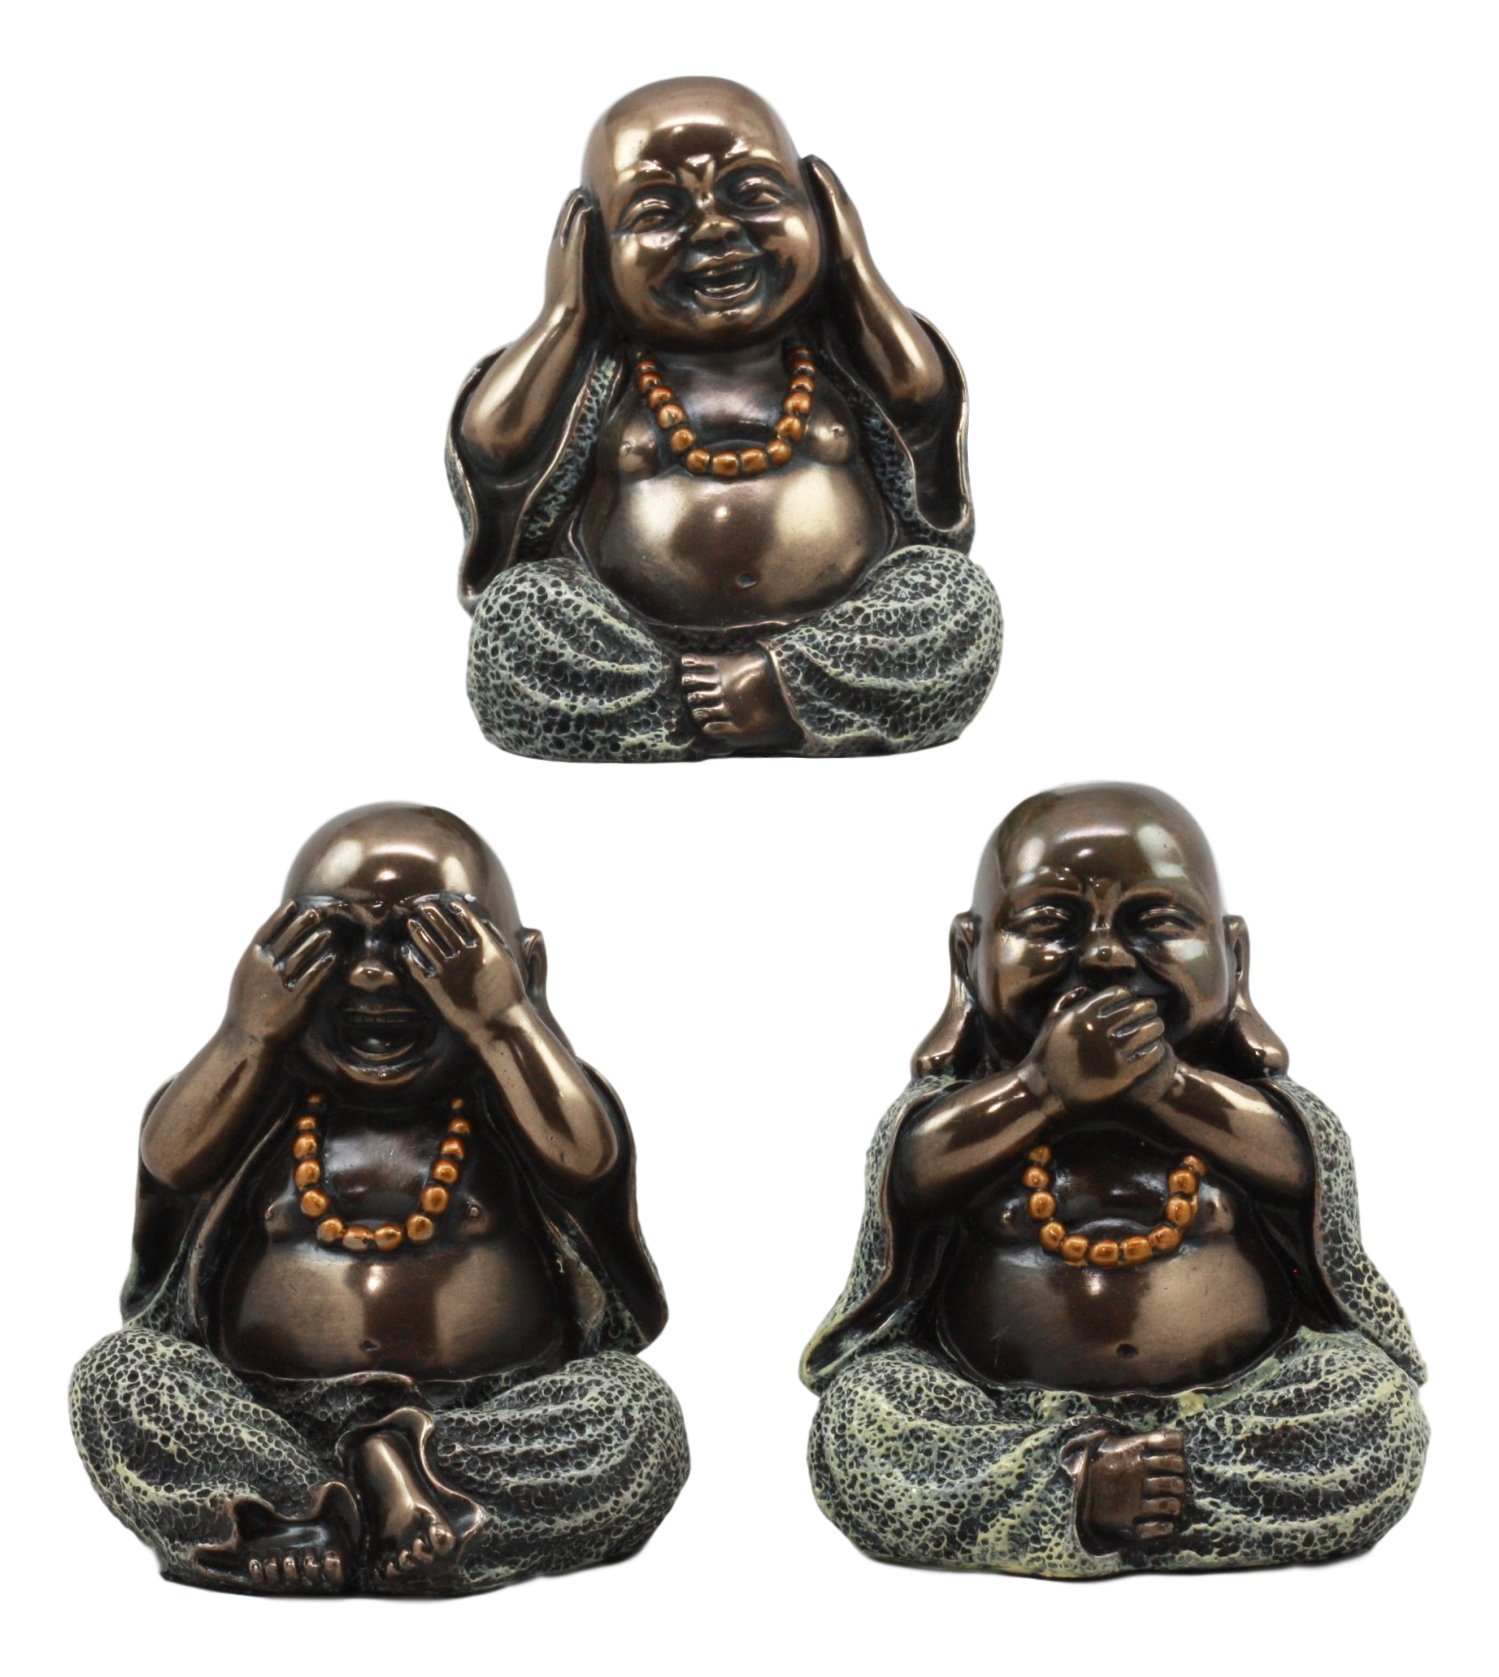 Ebros Small Charm Wise See Hear Speak No Evil Lucky Buddha Statues 4''Tall Bodhisattva Eastern Enlightenment Hotei Figurines by Ebros Gift